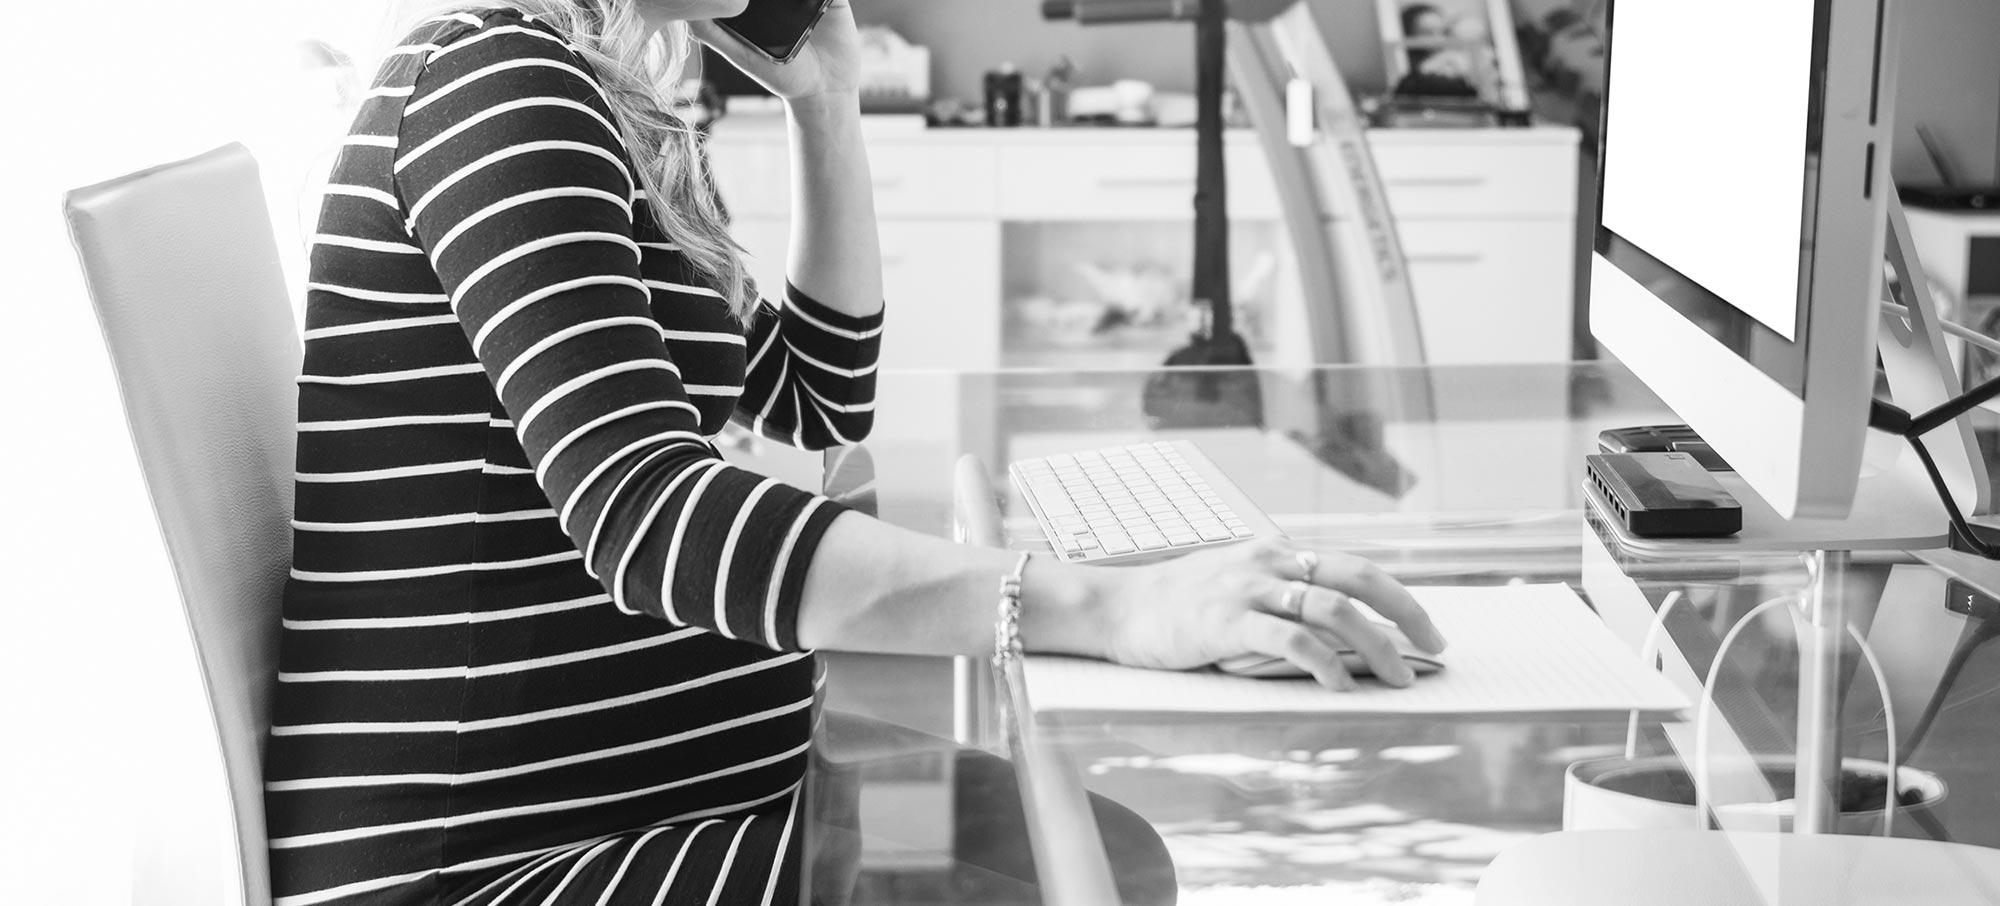 pregnancy-workplace_bw